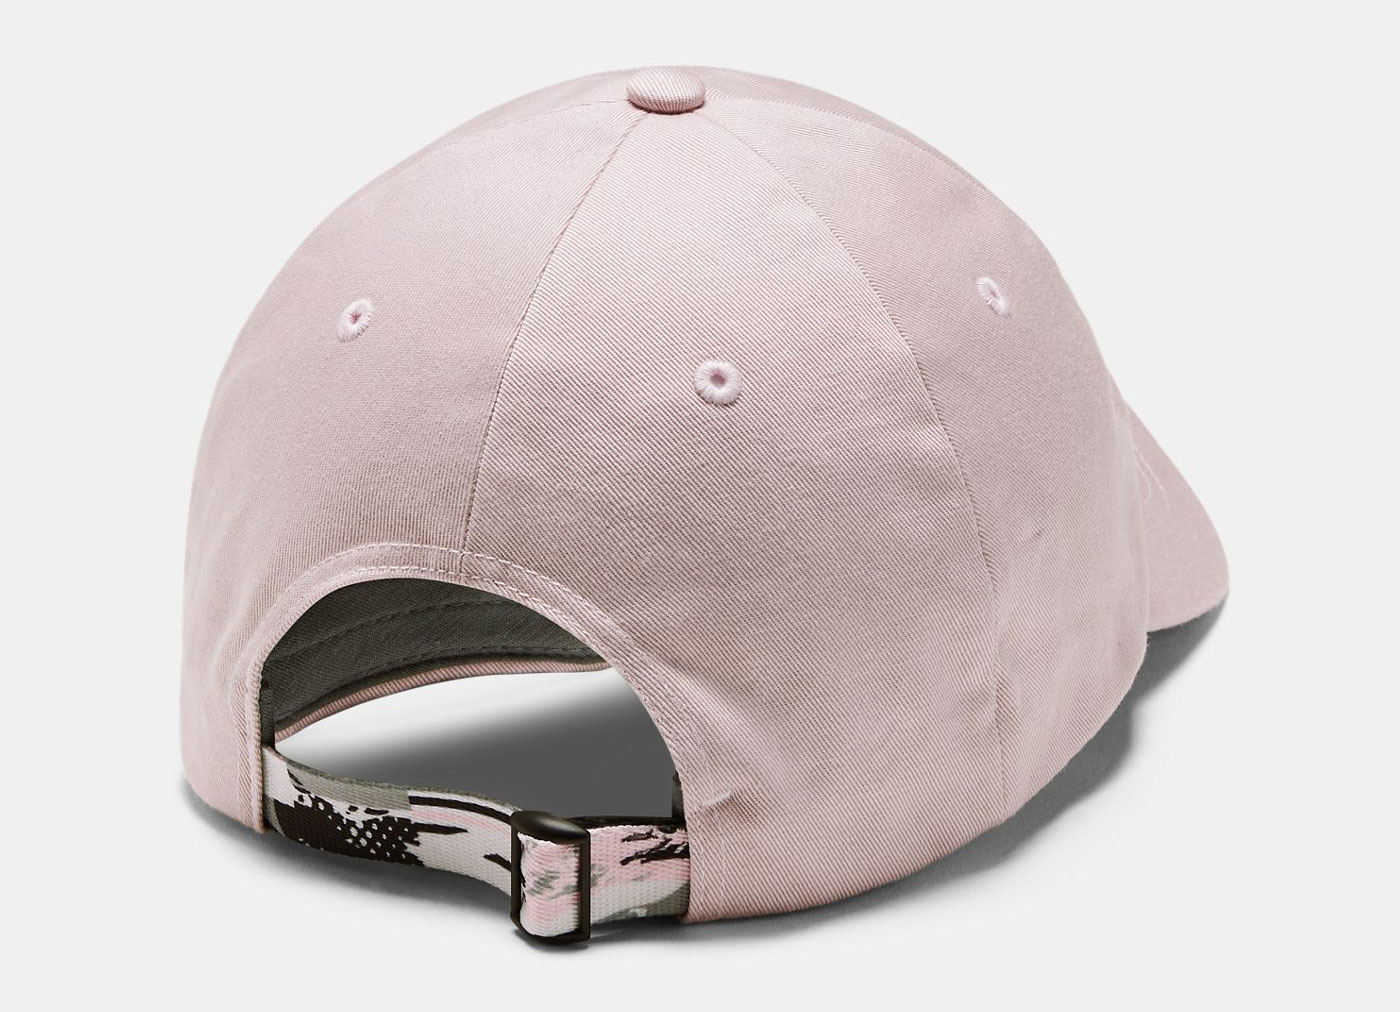 curry-7-hat-pink-2